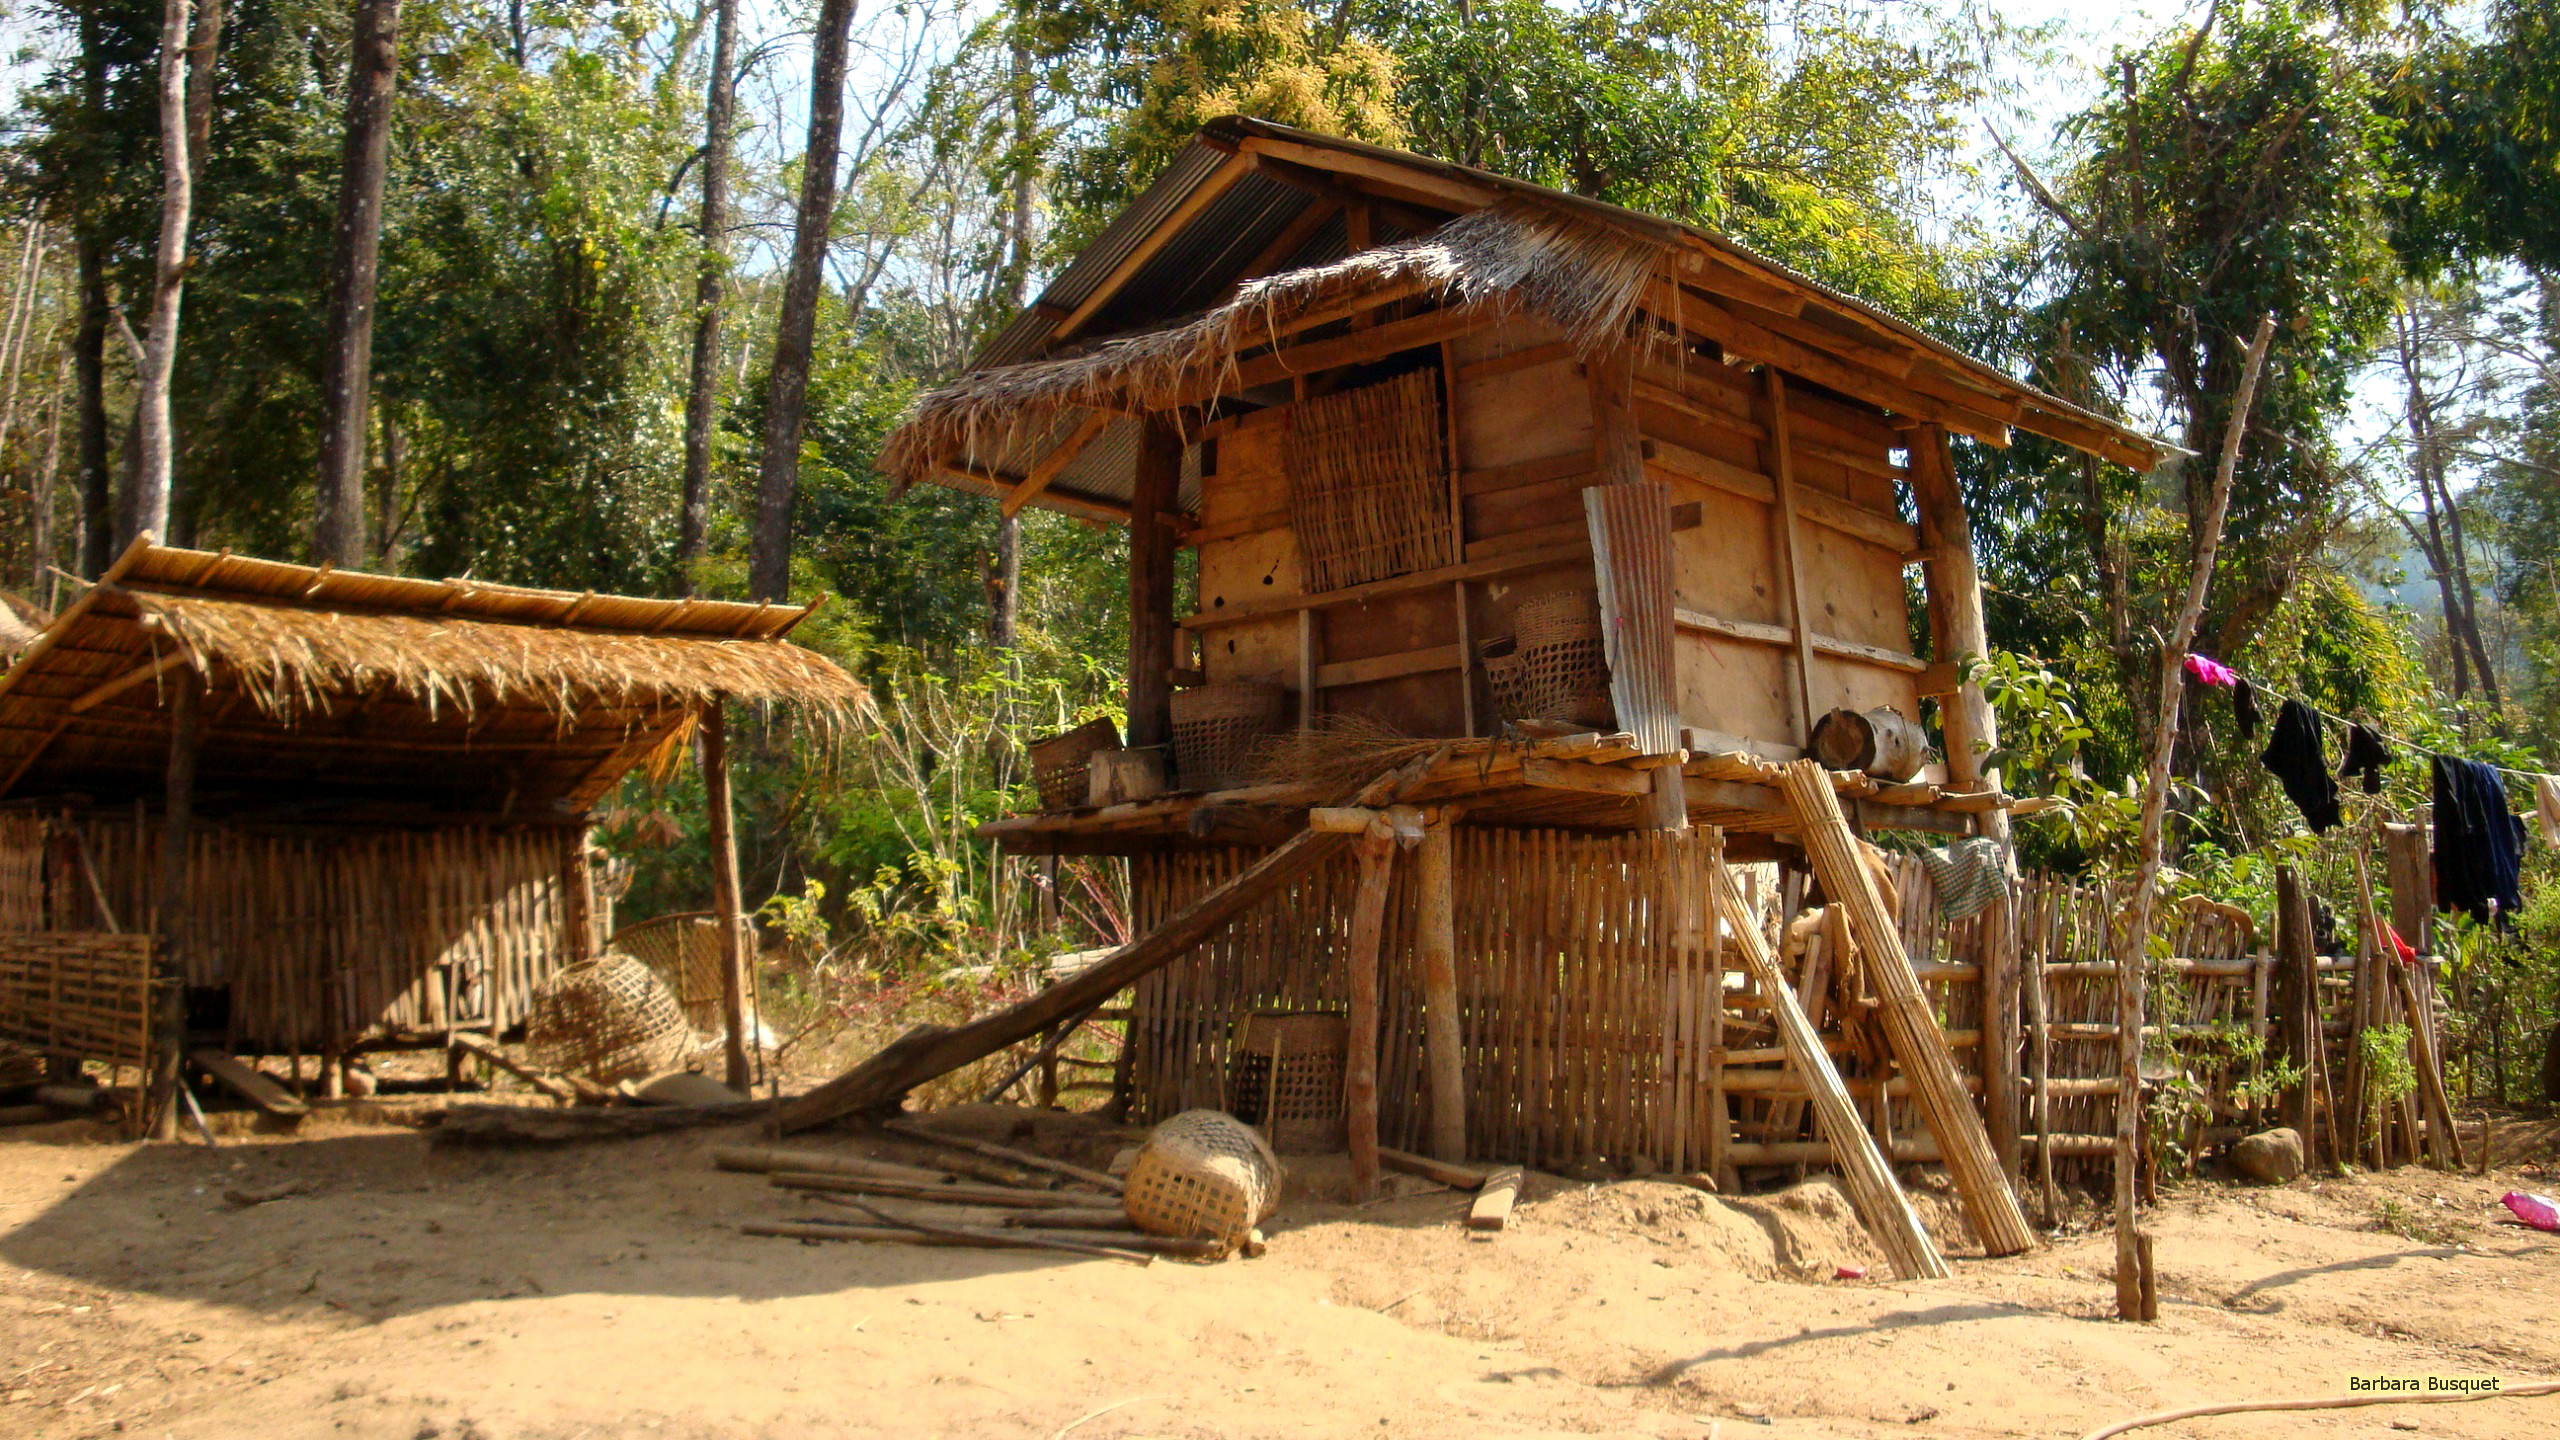 Fishing hut Thailand – Barbaras HD Wallpapers